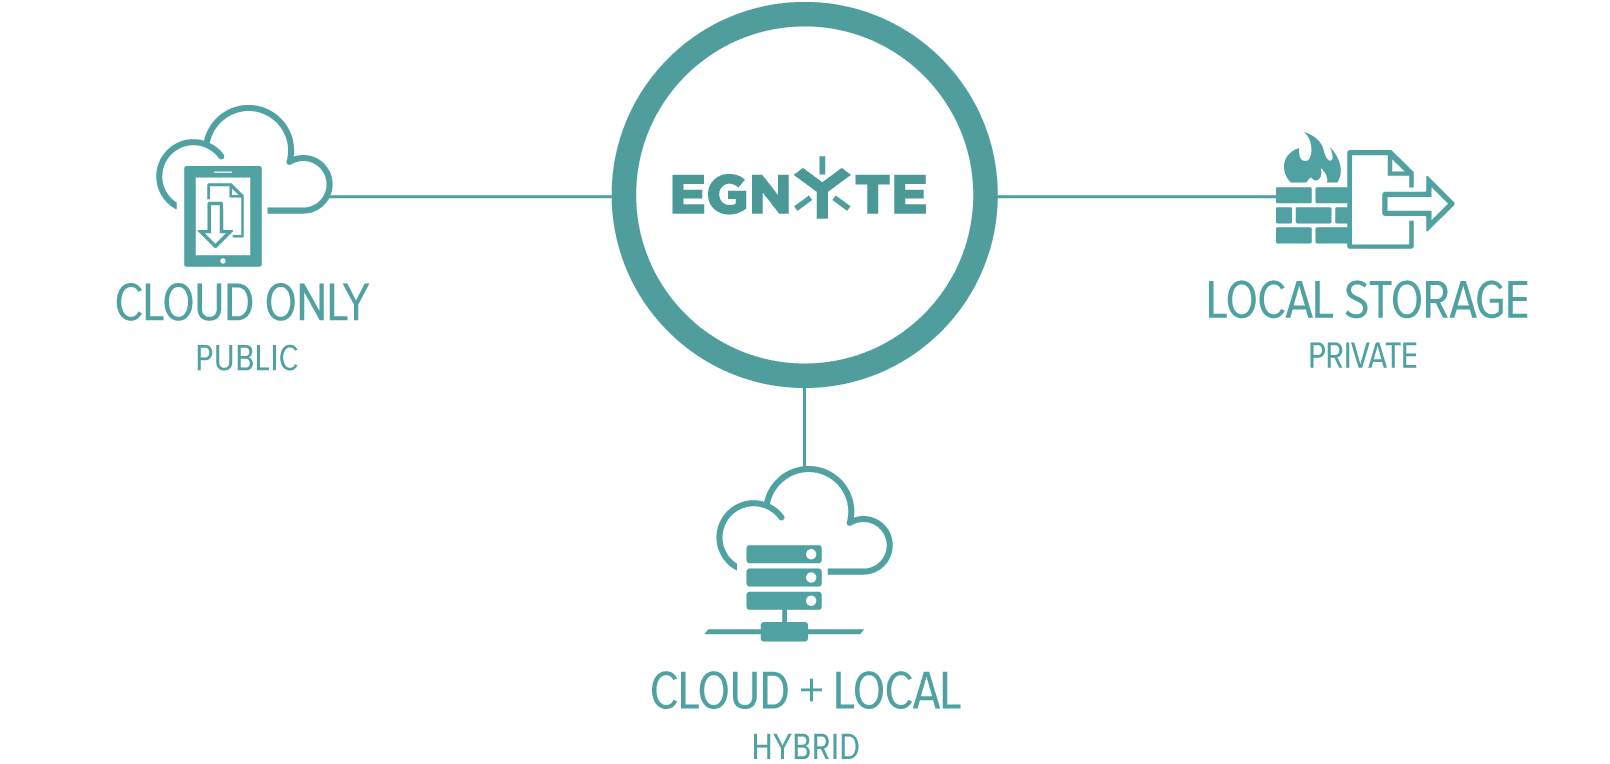 How Egnyte Works